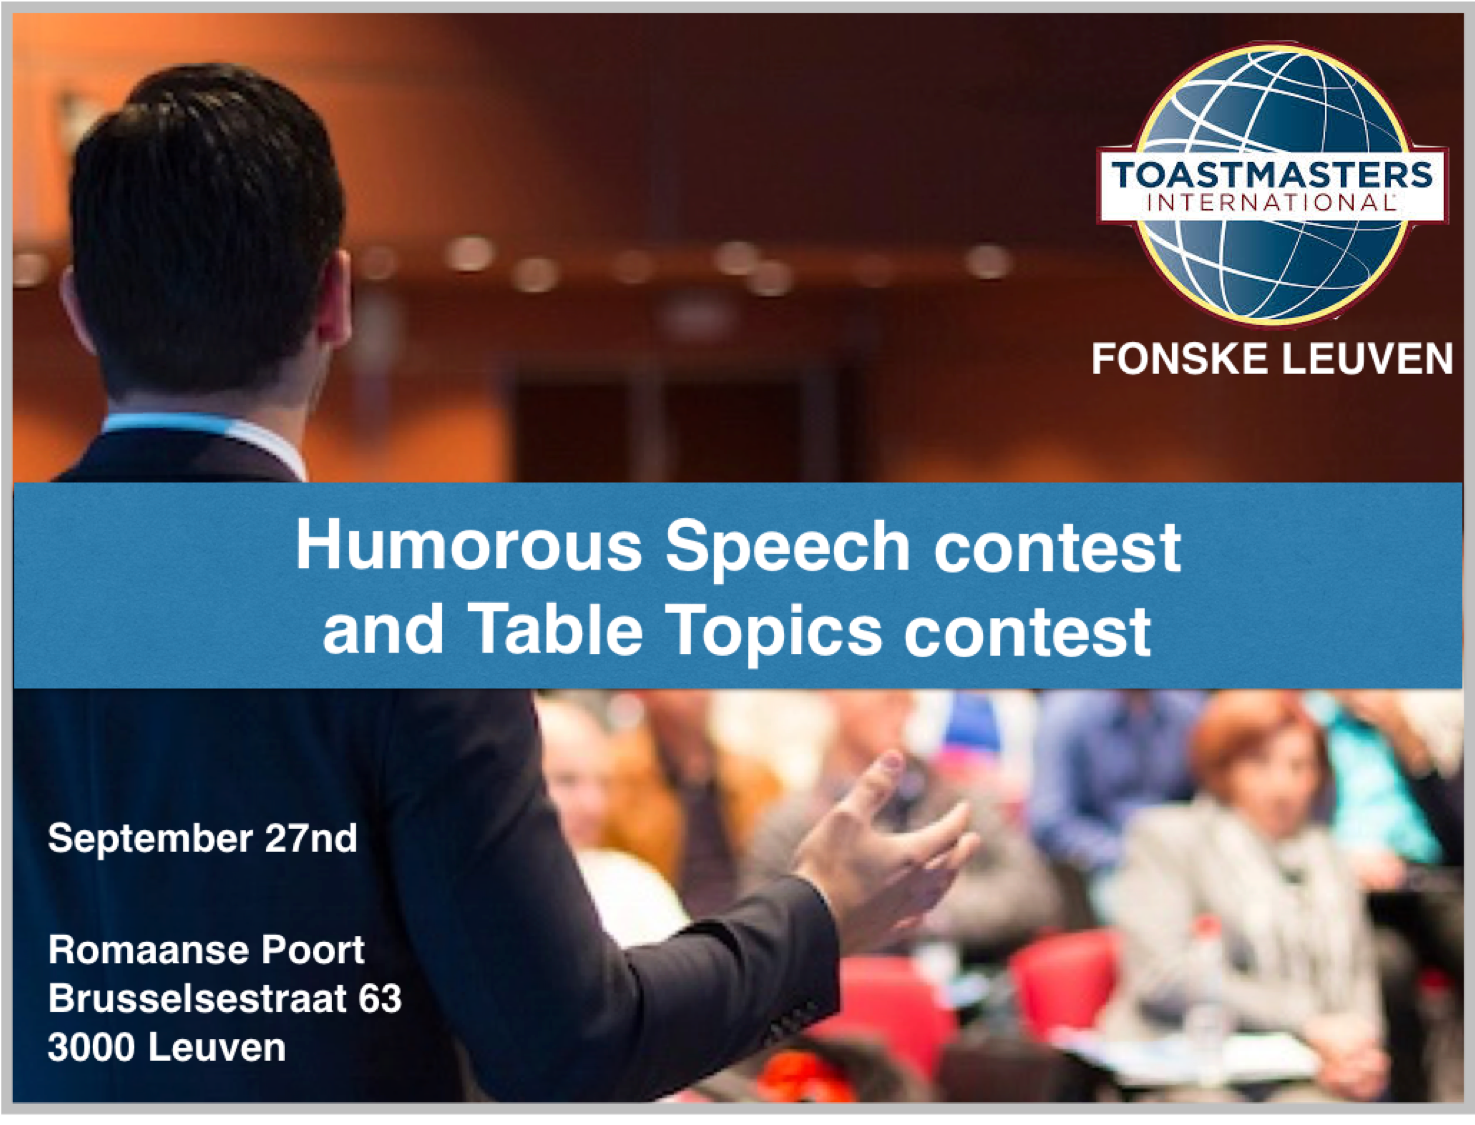 Humorous speech competition – Toastmasters Fonske Leuven